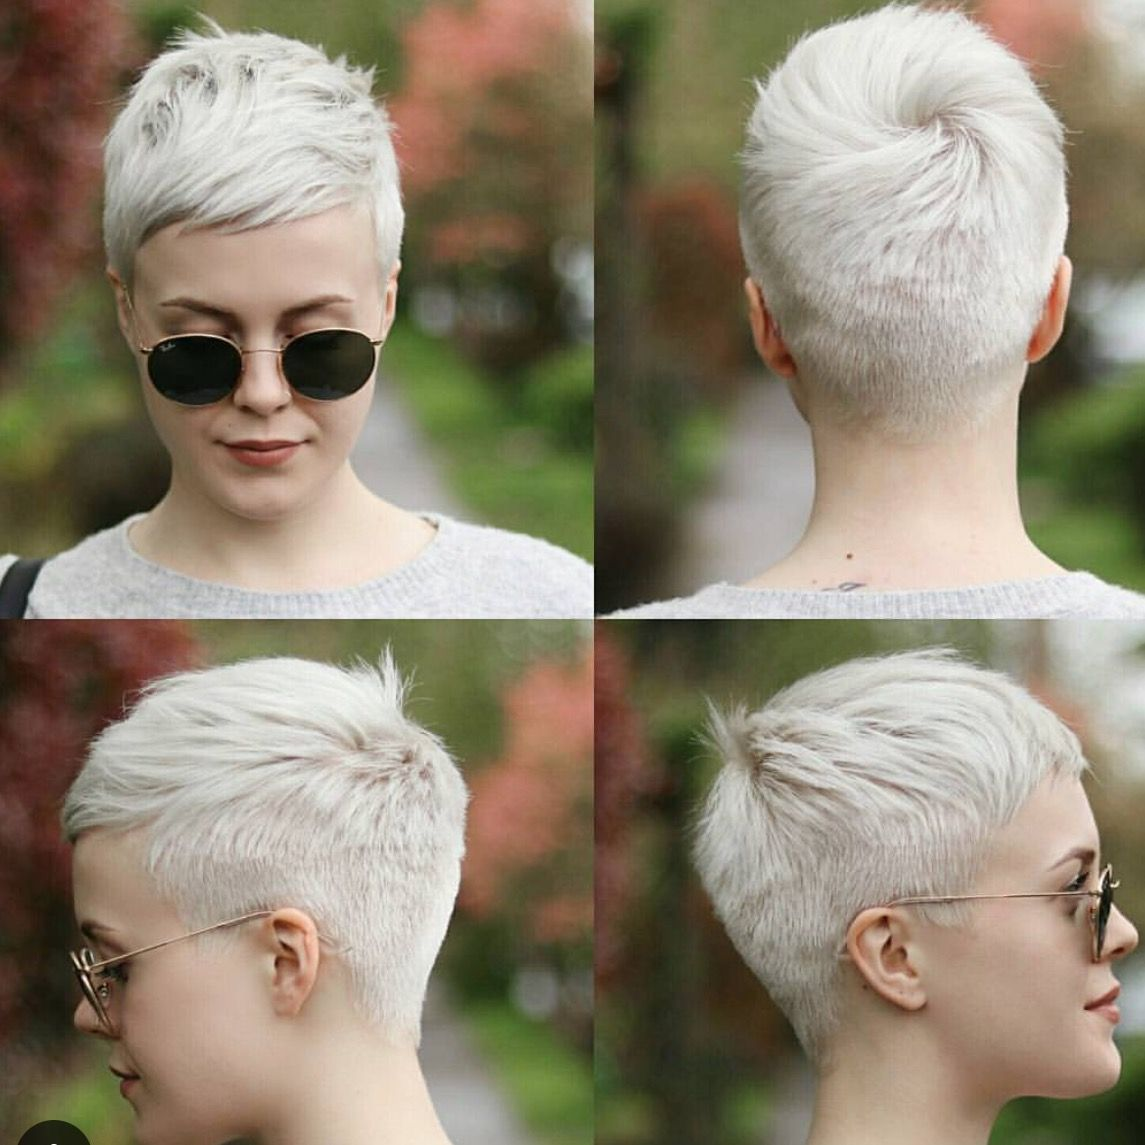 Think I May Need To Go This Short On Top To Fix My Breakage Short Hair Styles Pixie Very Short Hair Very Short Haircuts